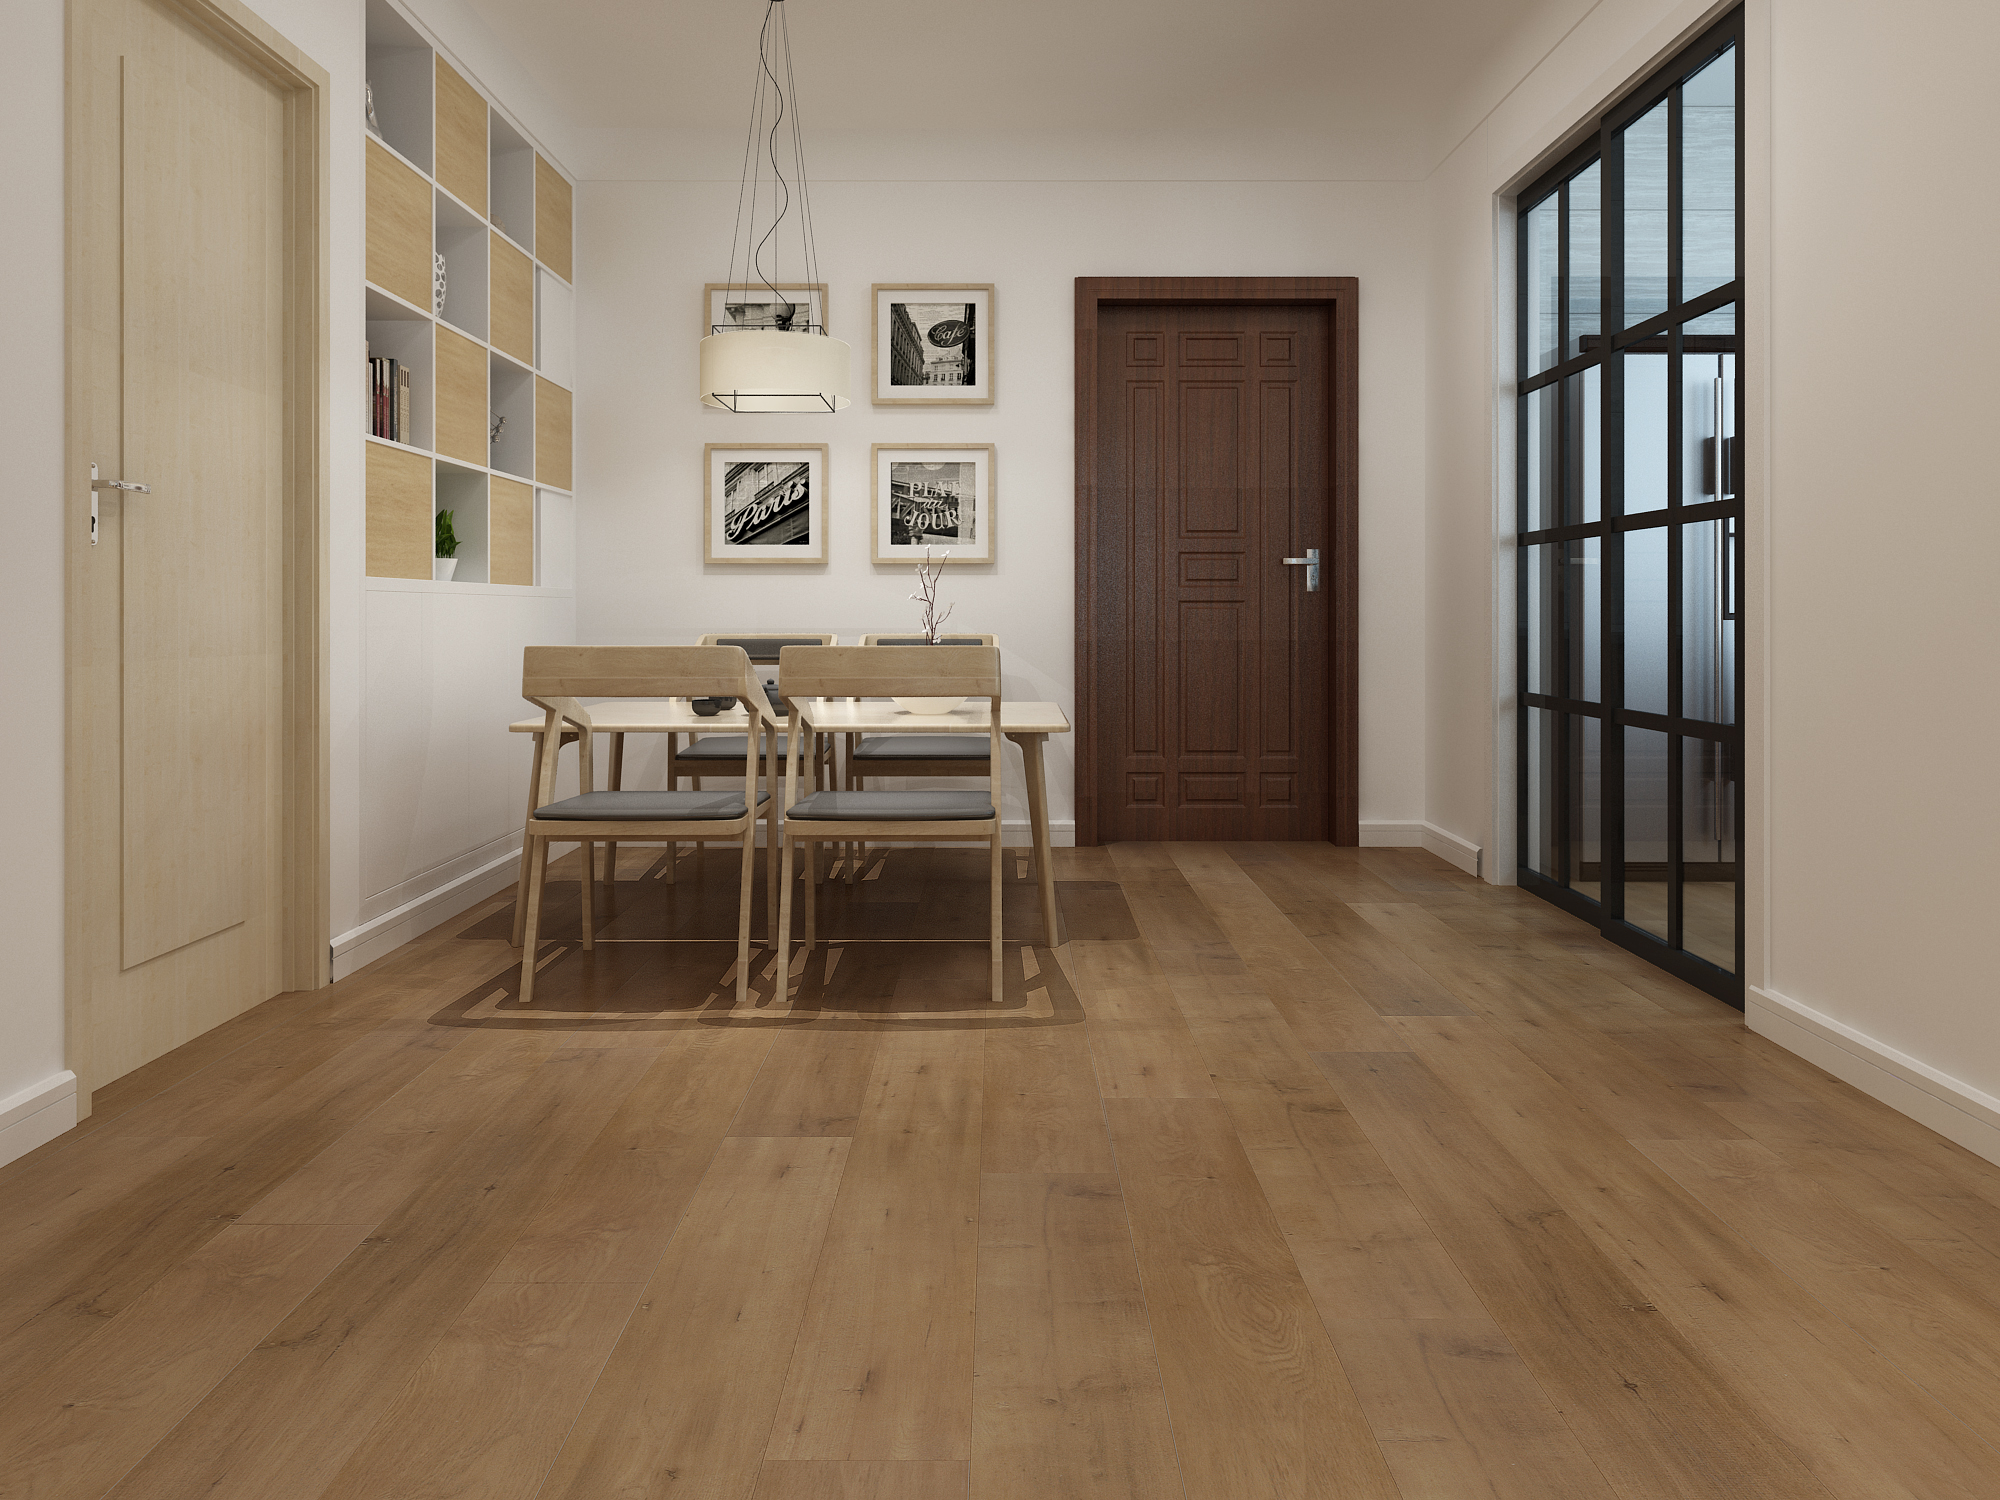 popular for hardwood colors blonde detail light space home most floor decorating sustainablepalsorg floors and ideas cookwithalocal